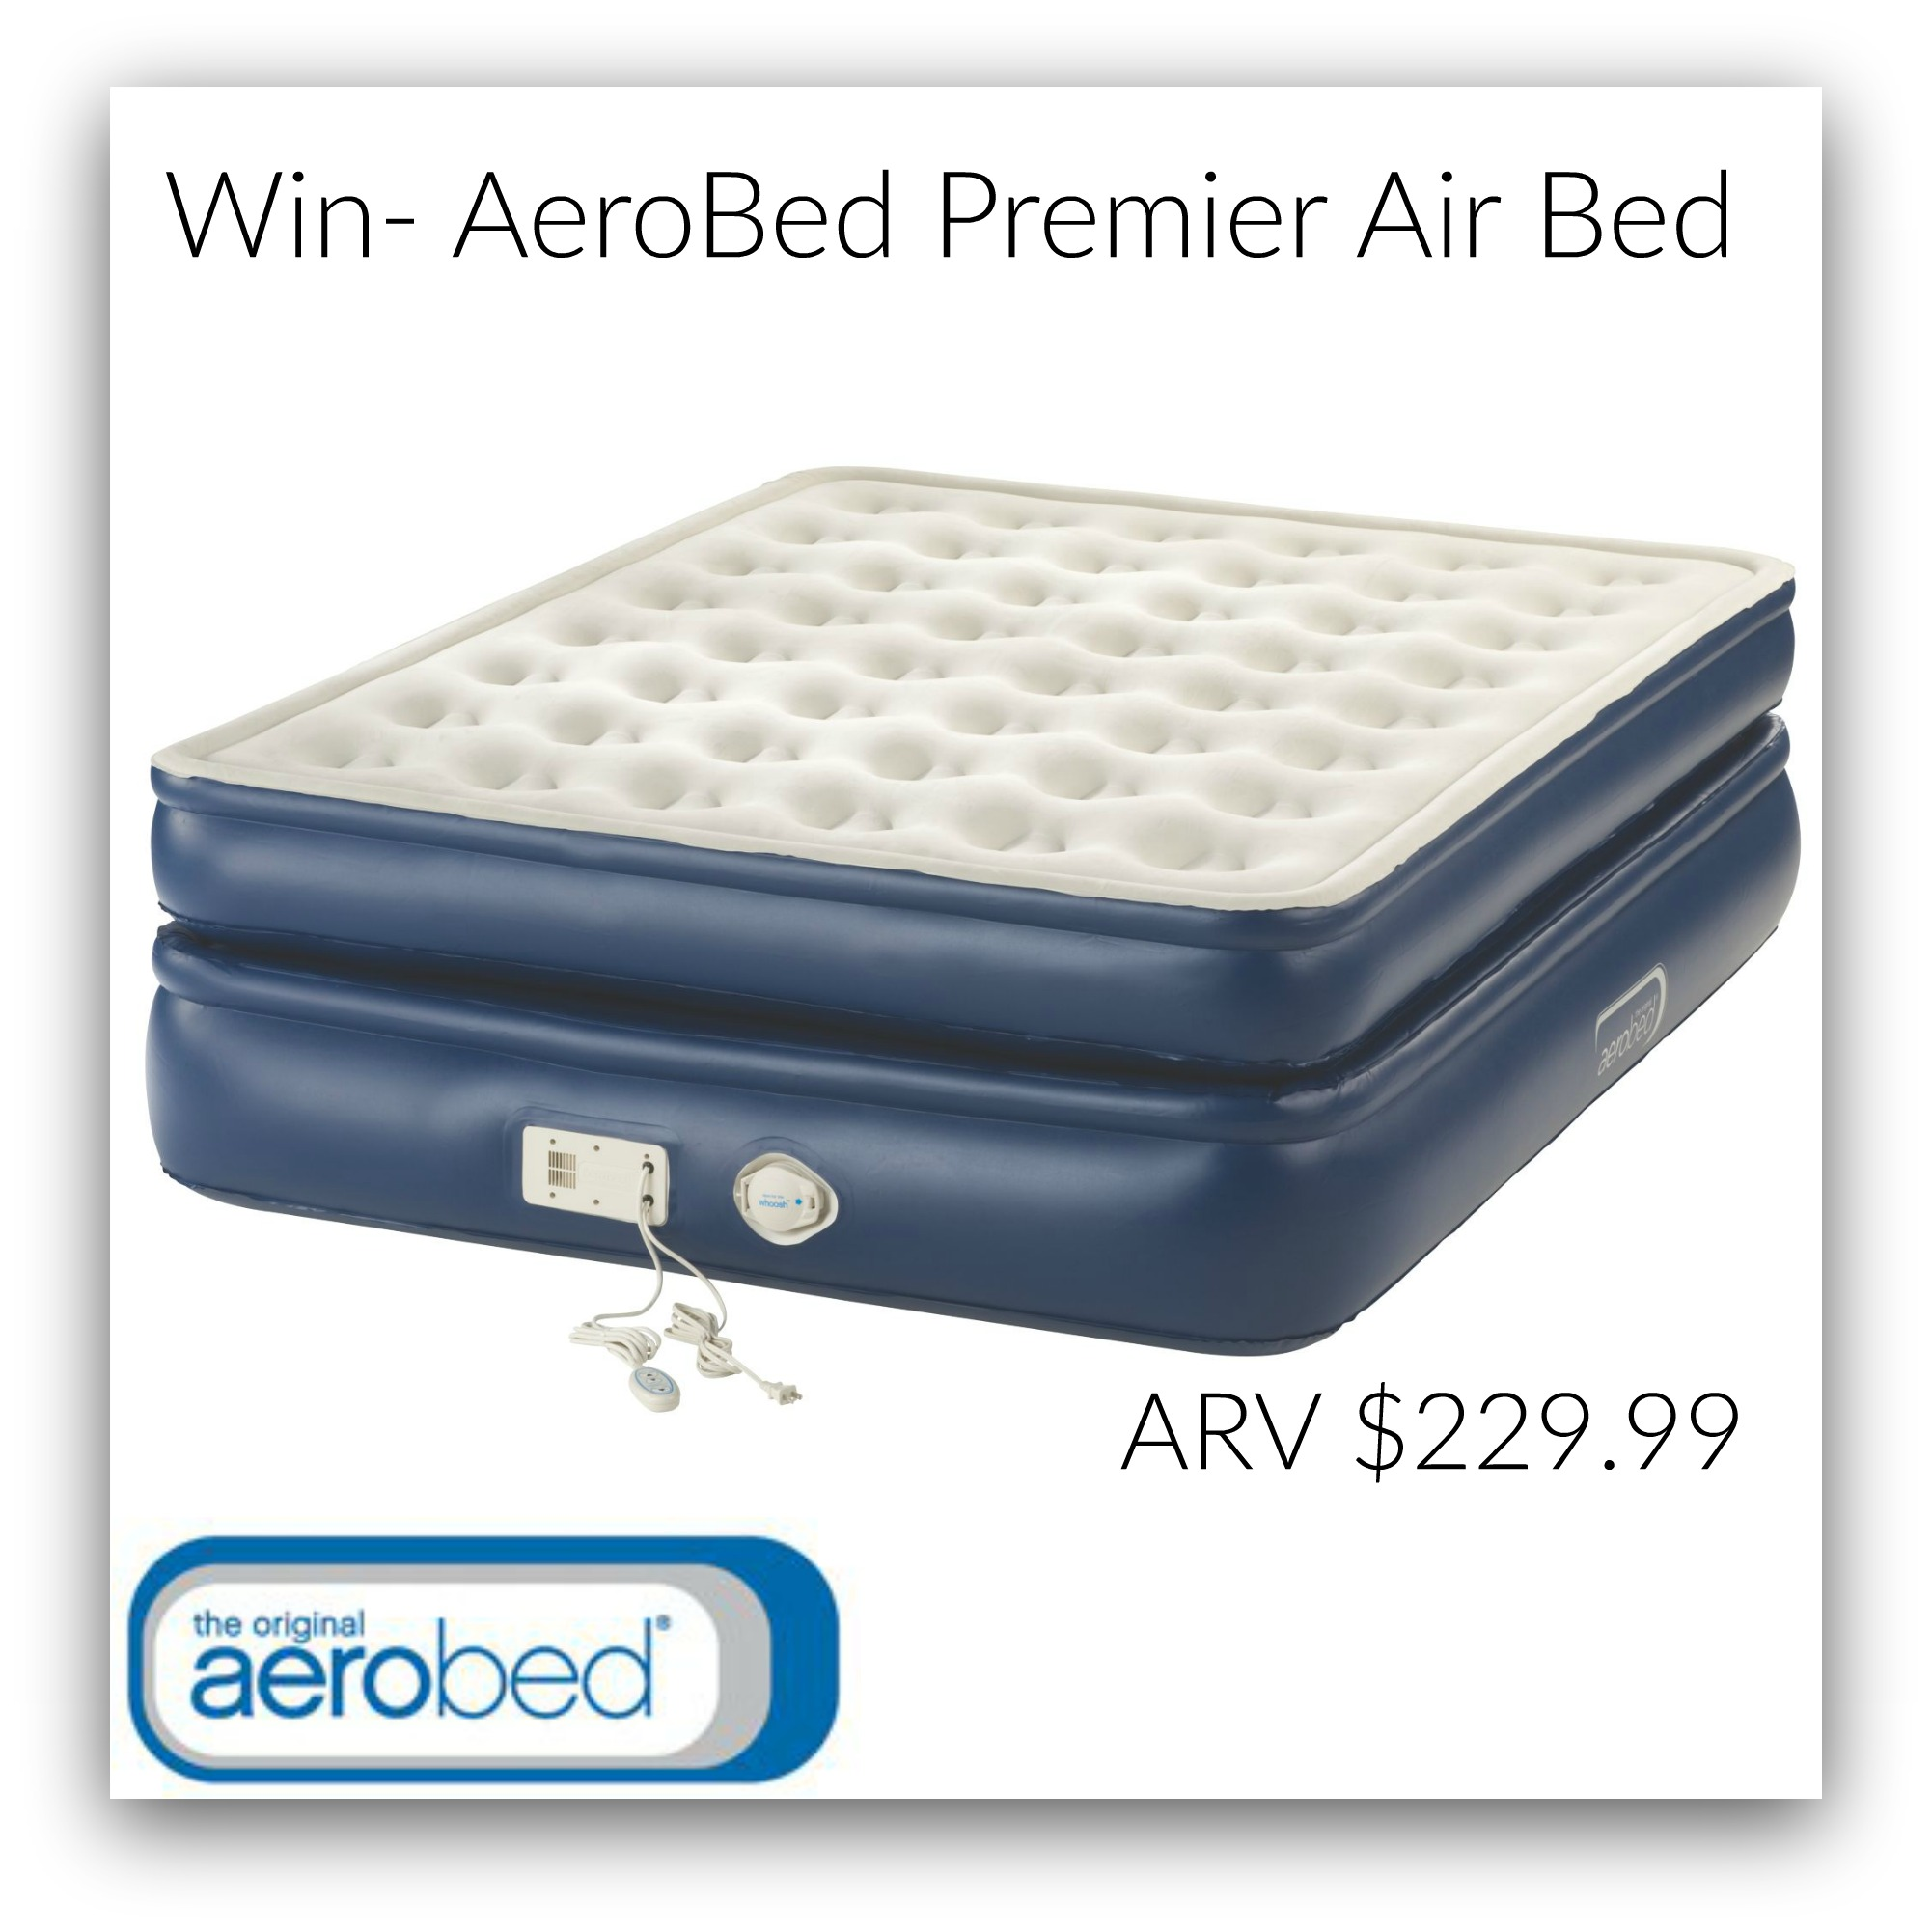 aerobed premier air bed comfortable extra sleeping space in